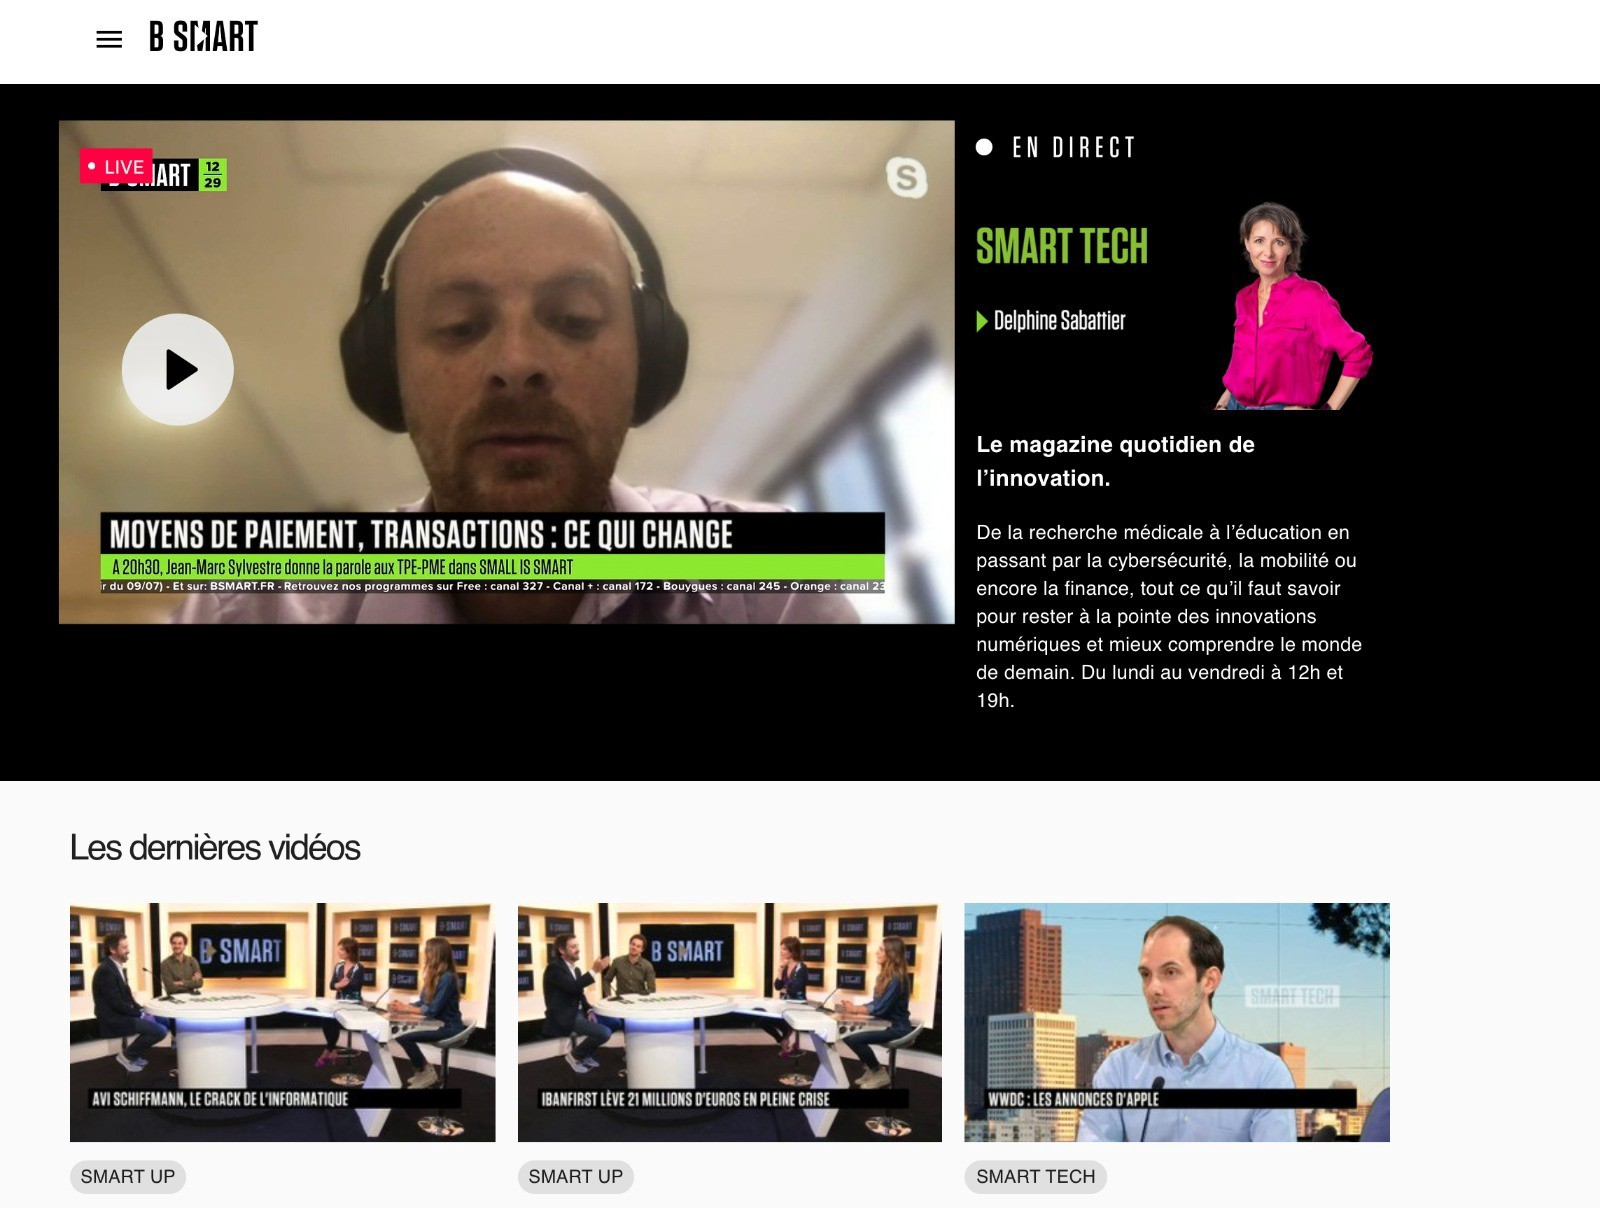 ARK SCIC President Francois Thoorens speaking in an interview with the Smart Tech program of B Smart TV.